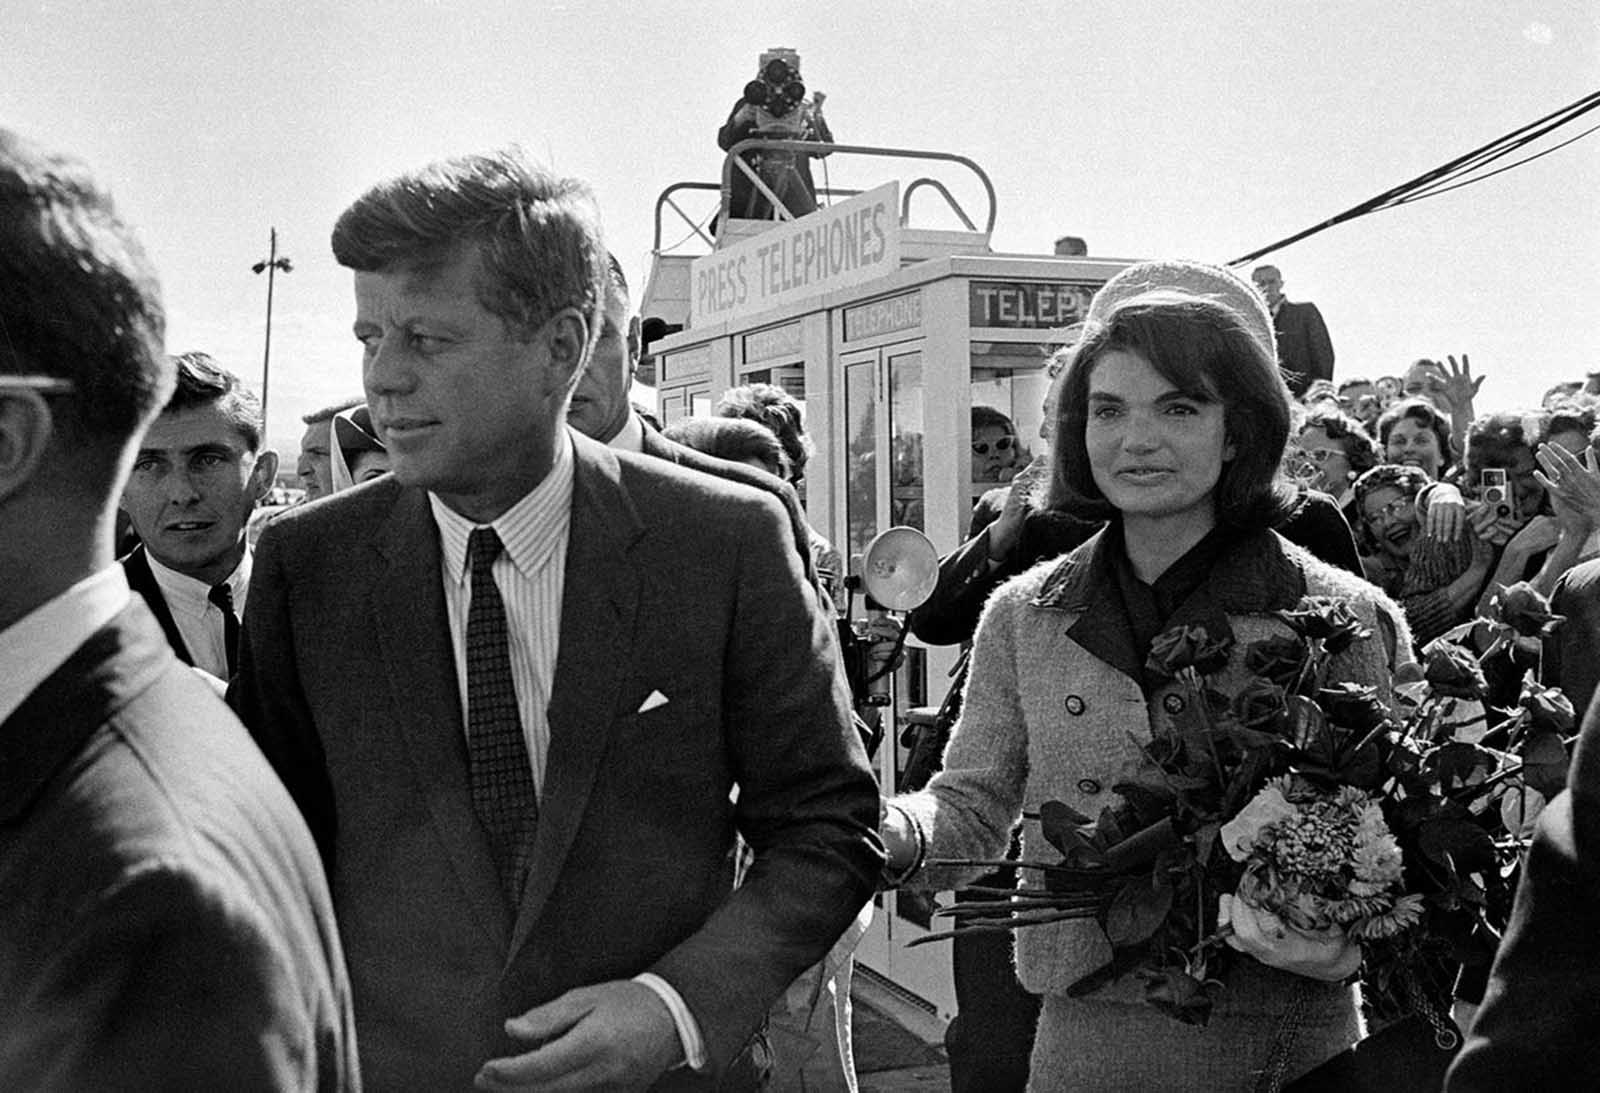 In this November 22, 1963 photo, President Kennedy and his wife, Jacqueline Kennedy, arrive at Love Field airport in Dallas, Texas.